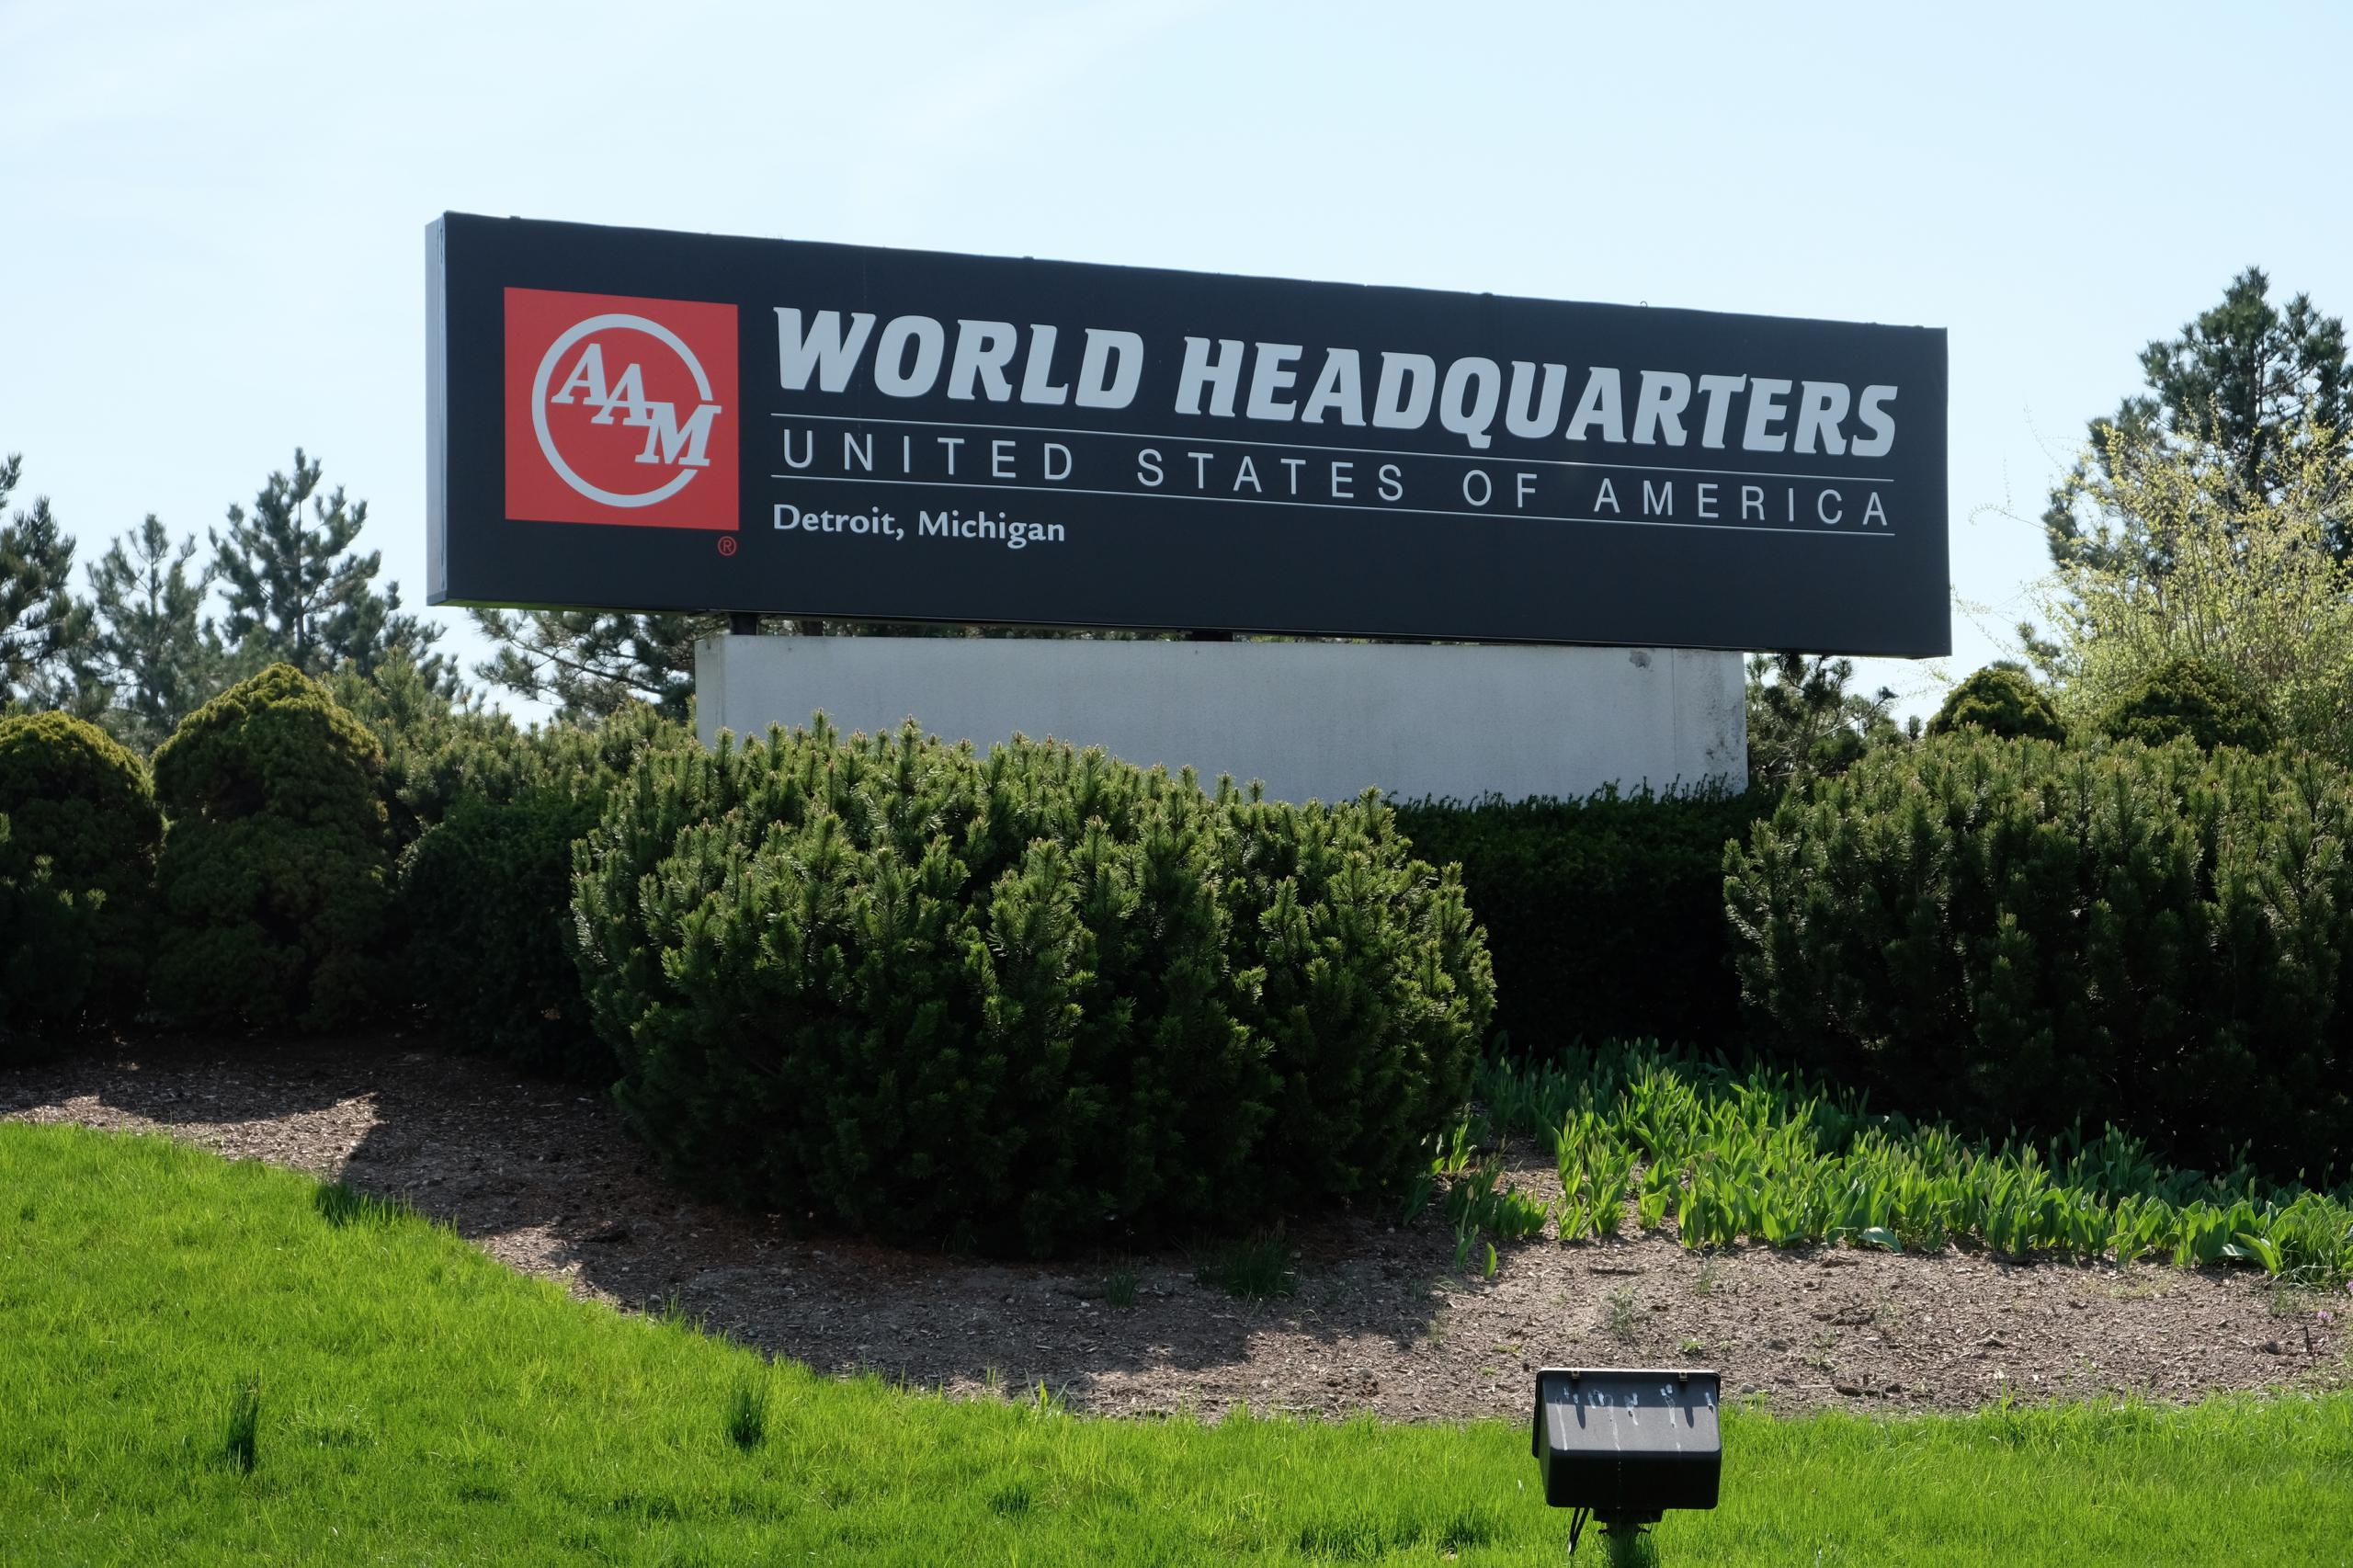 Entrance to American Axle & Manufacturing's corporate headquarters in Detroit, Michigan.